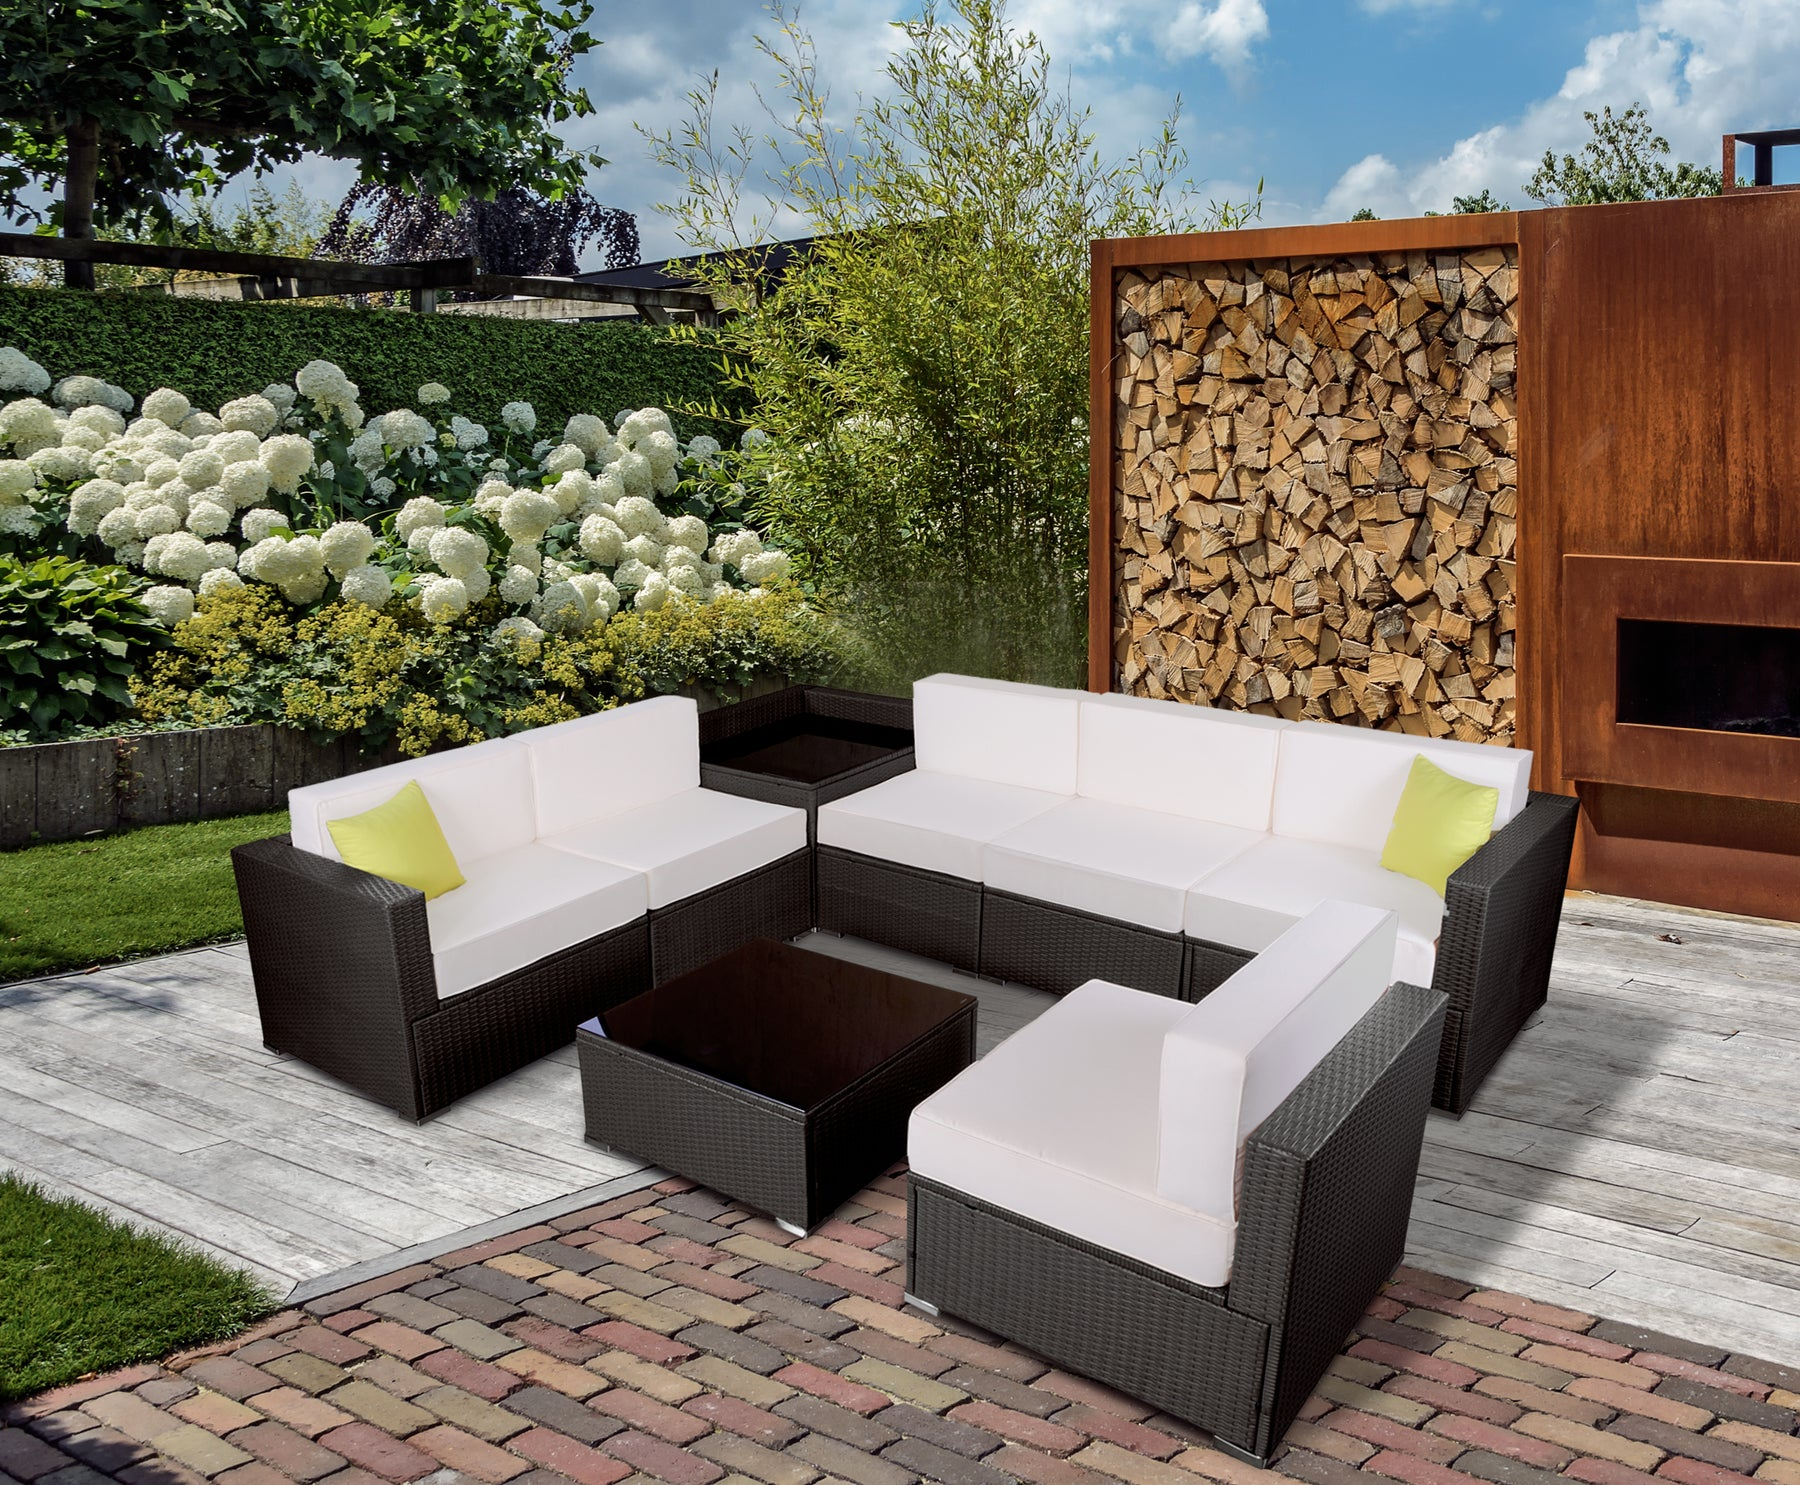 mcombo 8 PC Outdoor Furniture Patio Wicker Sofa Sectional With Cushion Seat 6082